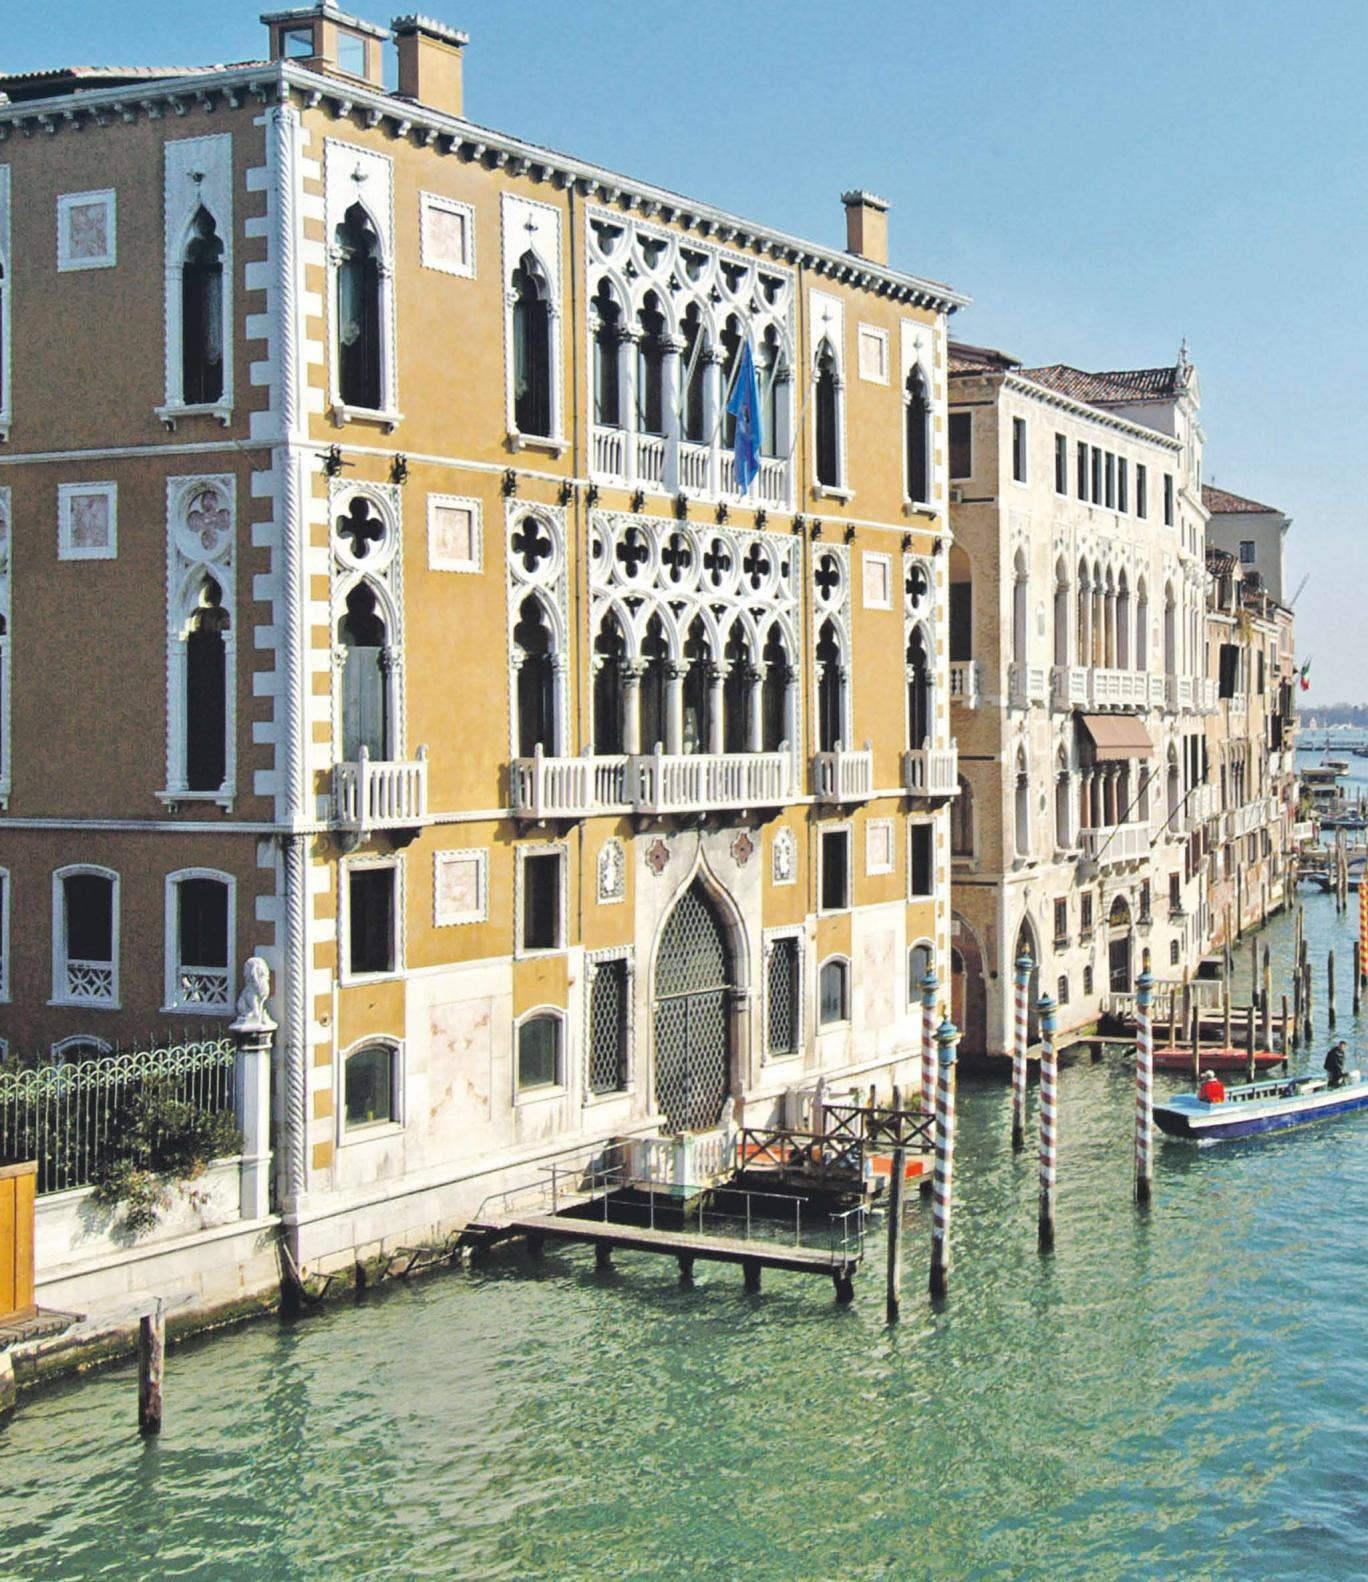 Venice is an ideal holiday destination for couples